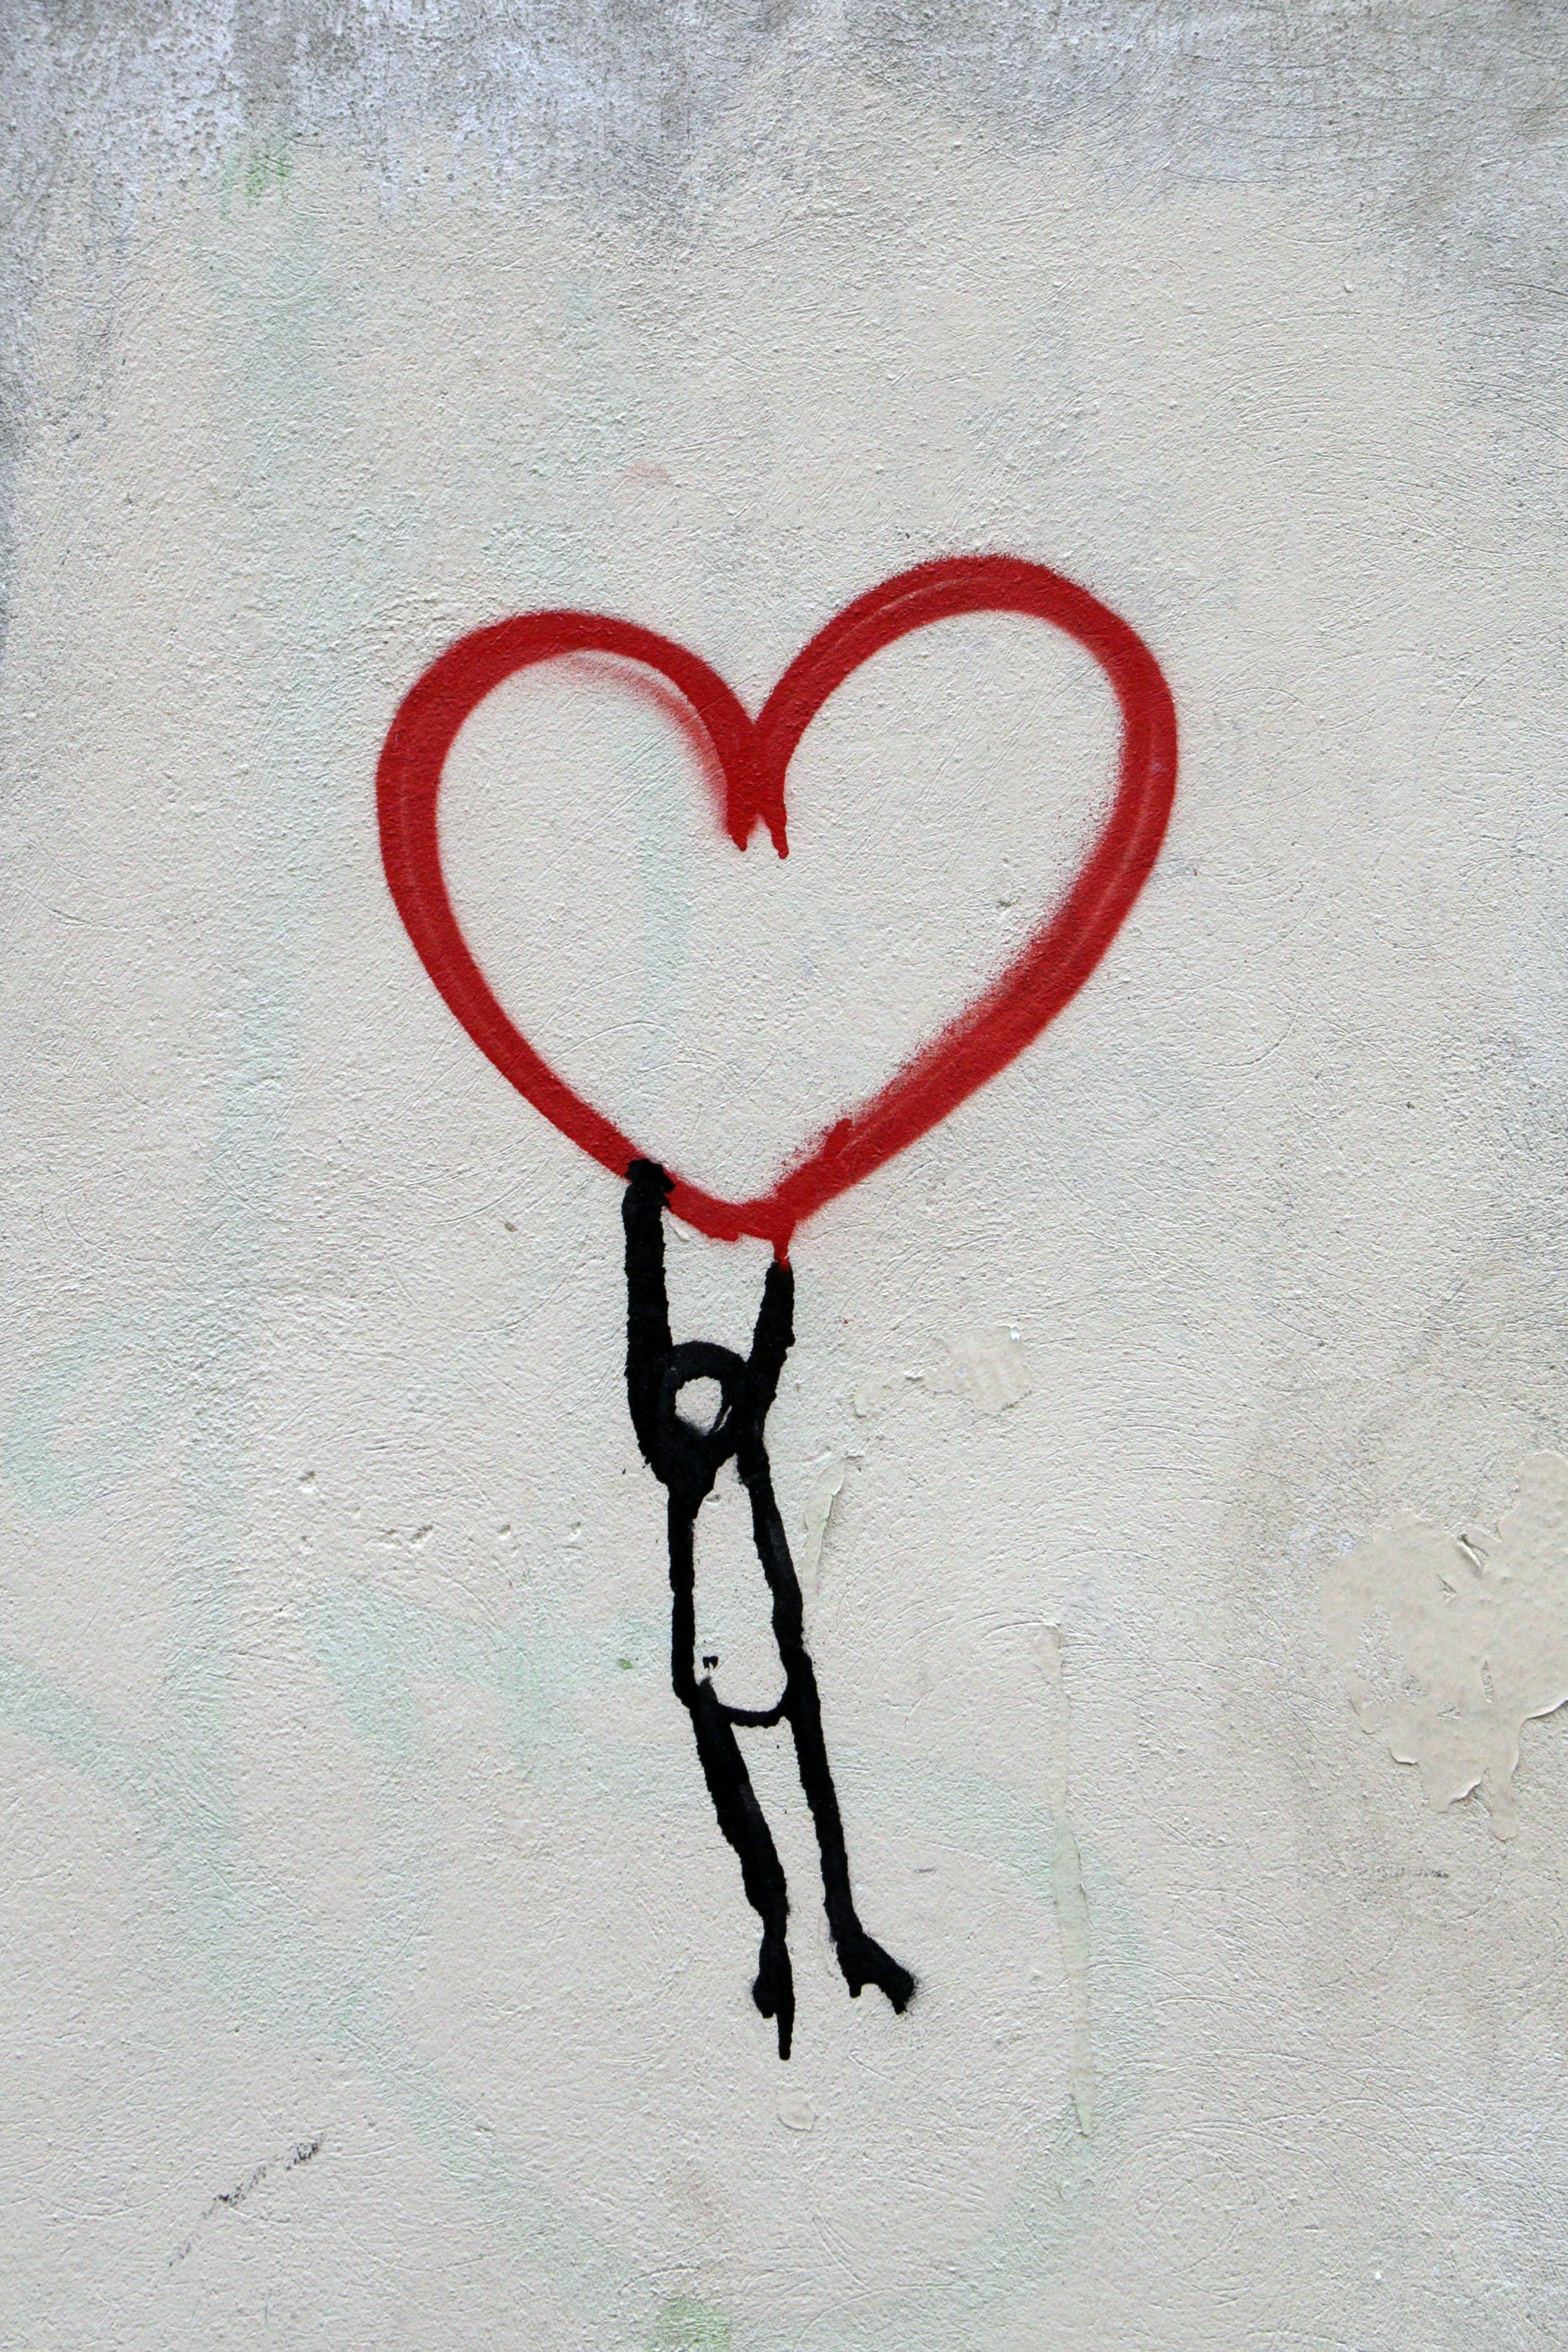 all you need is love - love is all i need